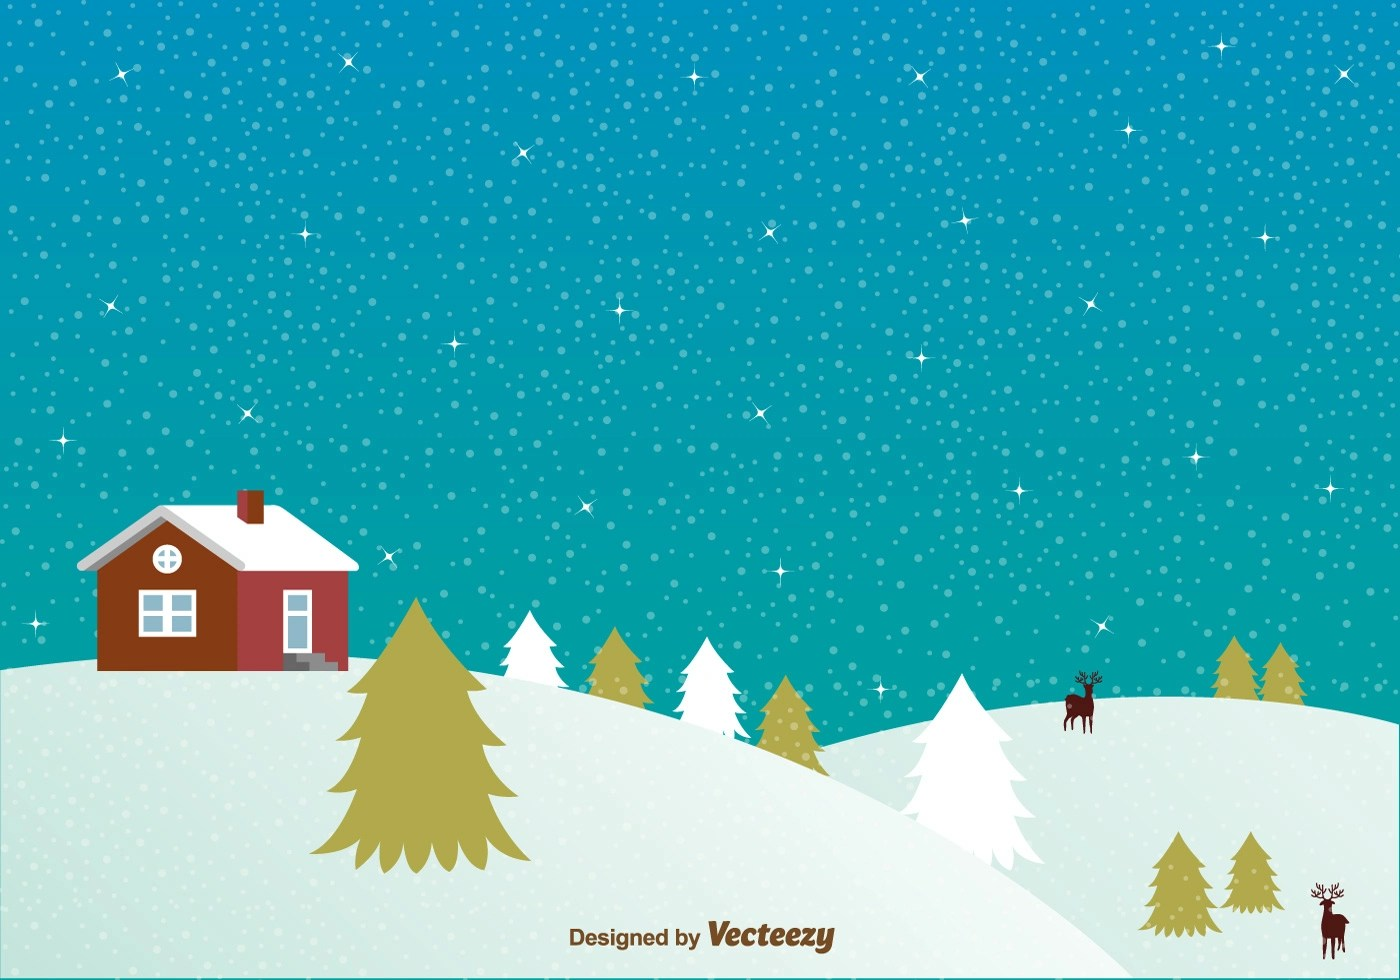 Free Download Of Christmas Wallpaper With Snow Falling Snowy Night With House Background Download Free Vector